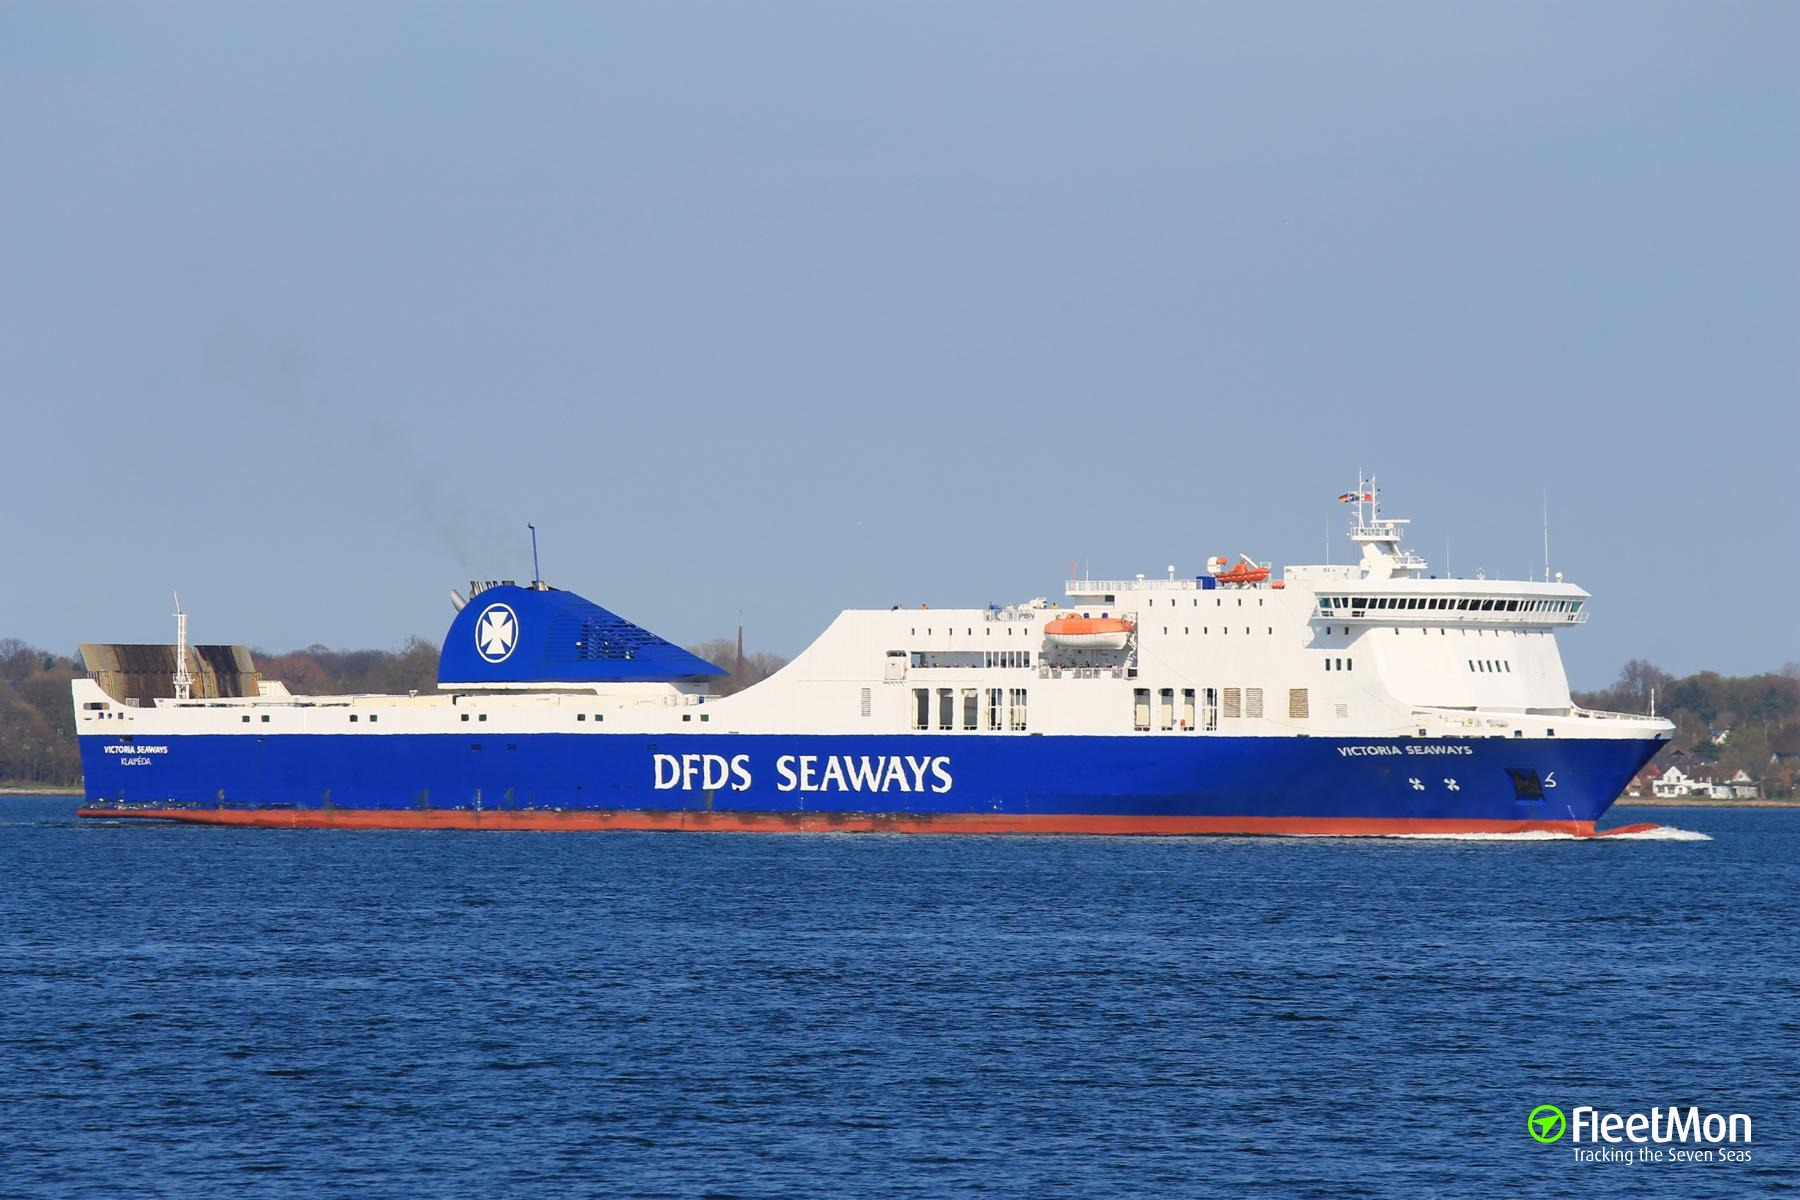 Fire on cargo deck of ferry Victoria Seaways, Baltic